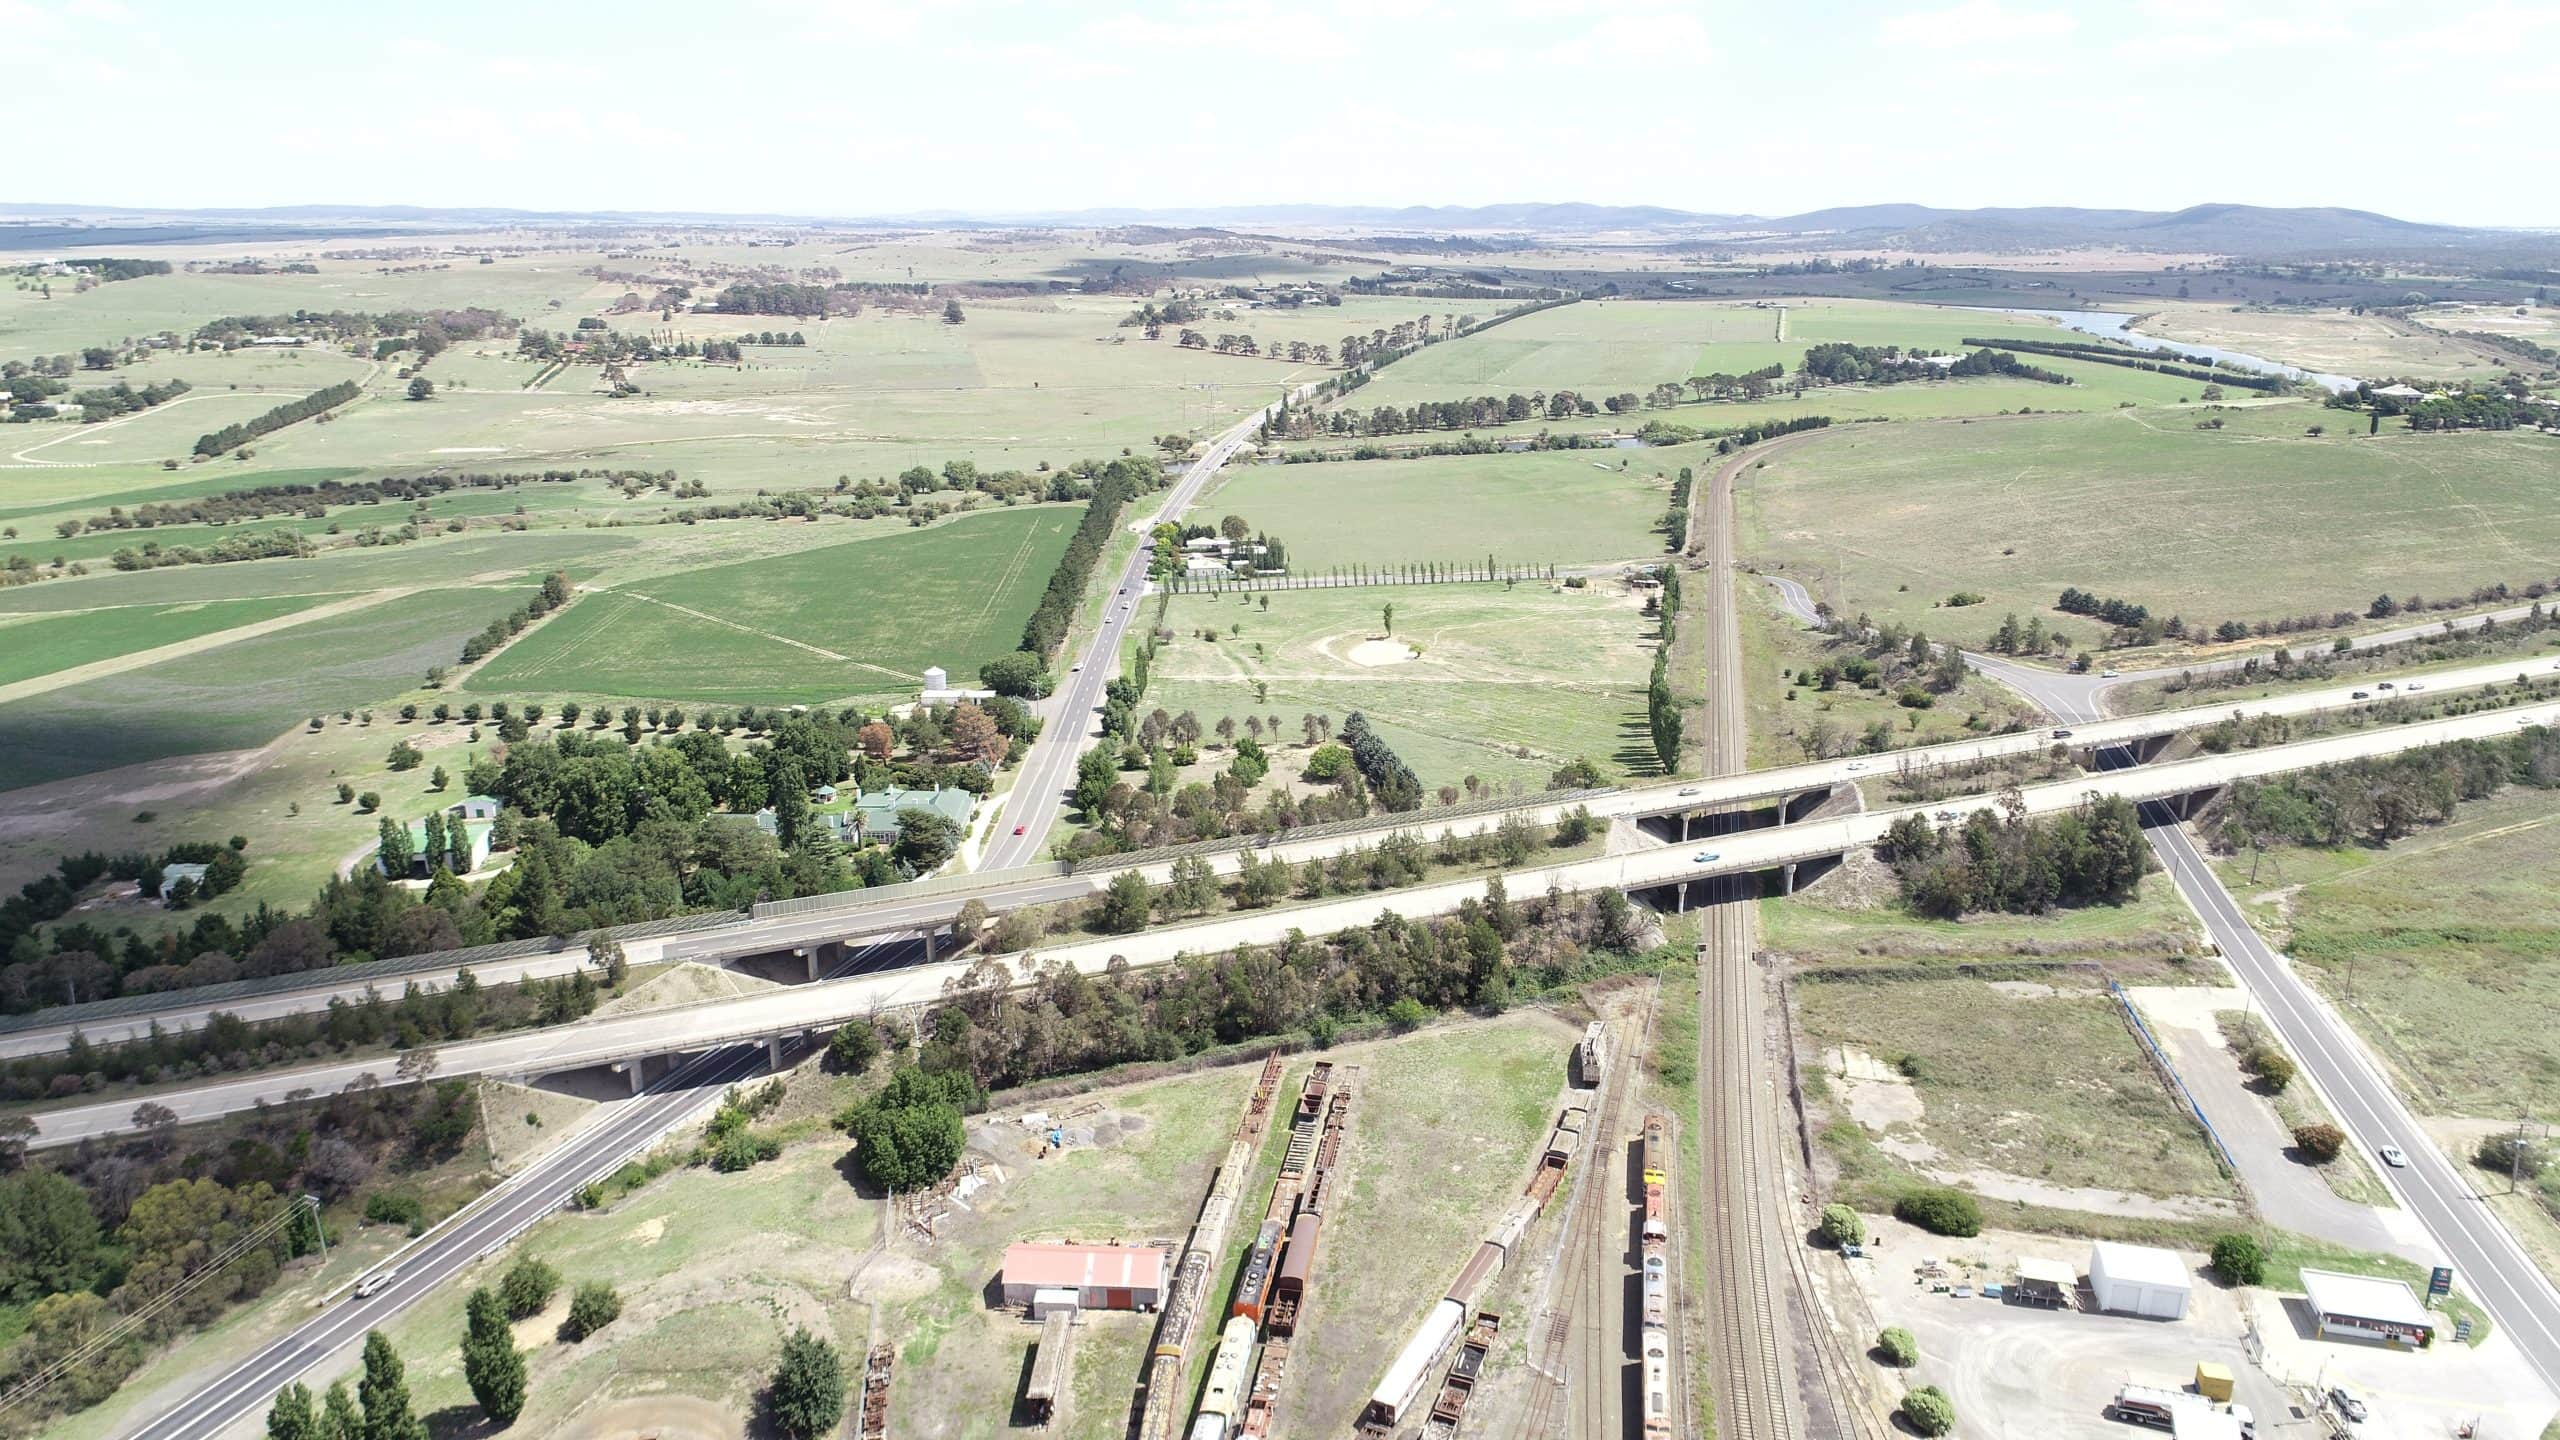 Aerial view of highway, railway, and freight trains of NSW, Australia